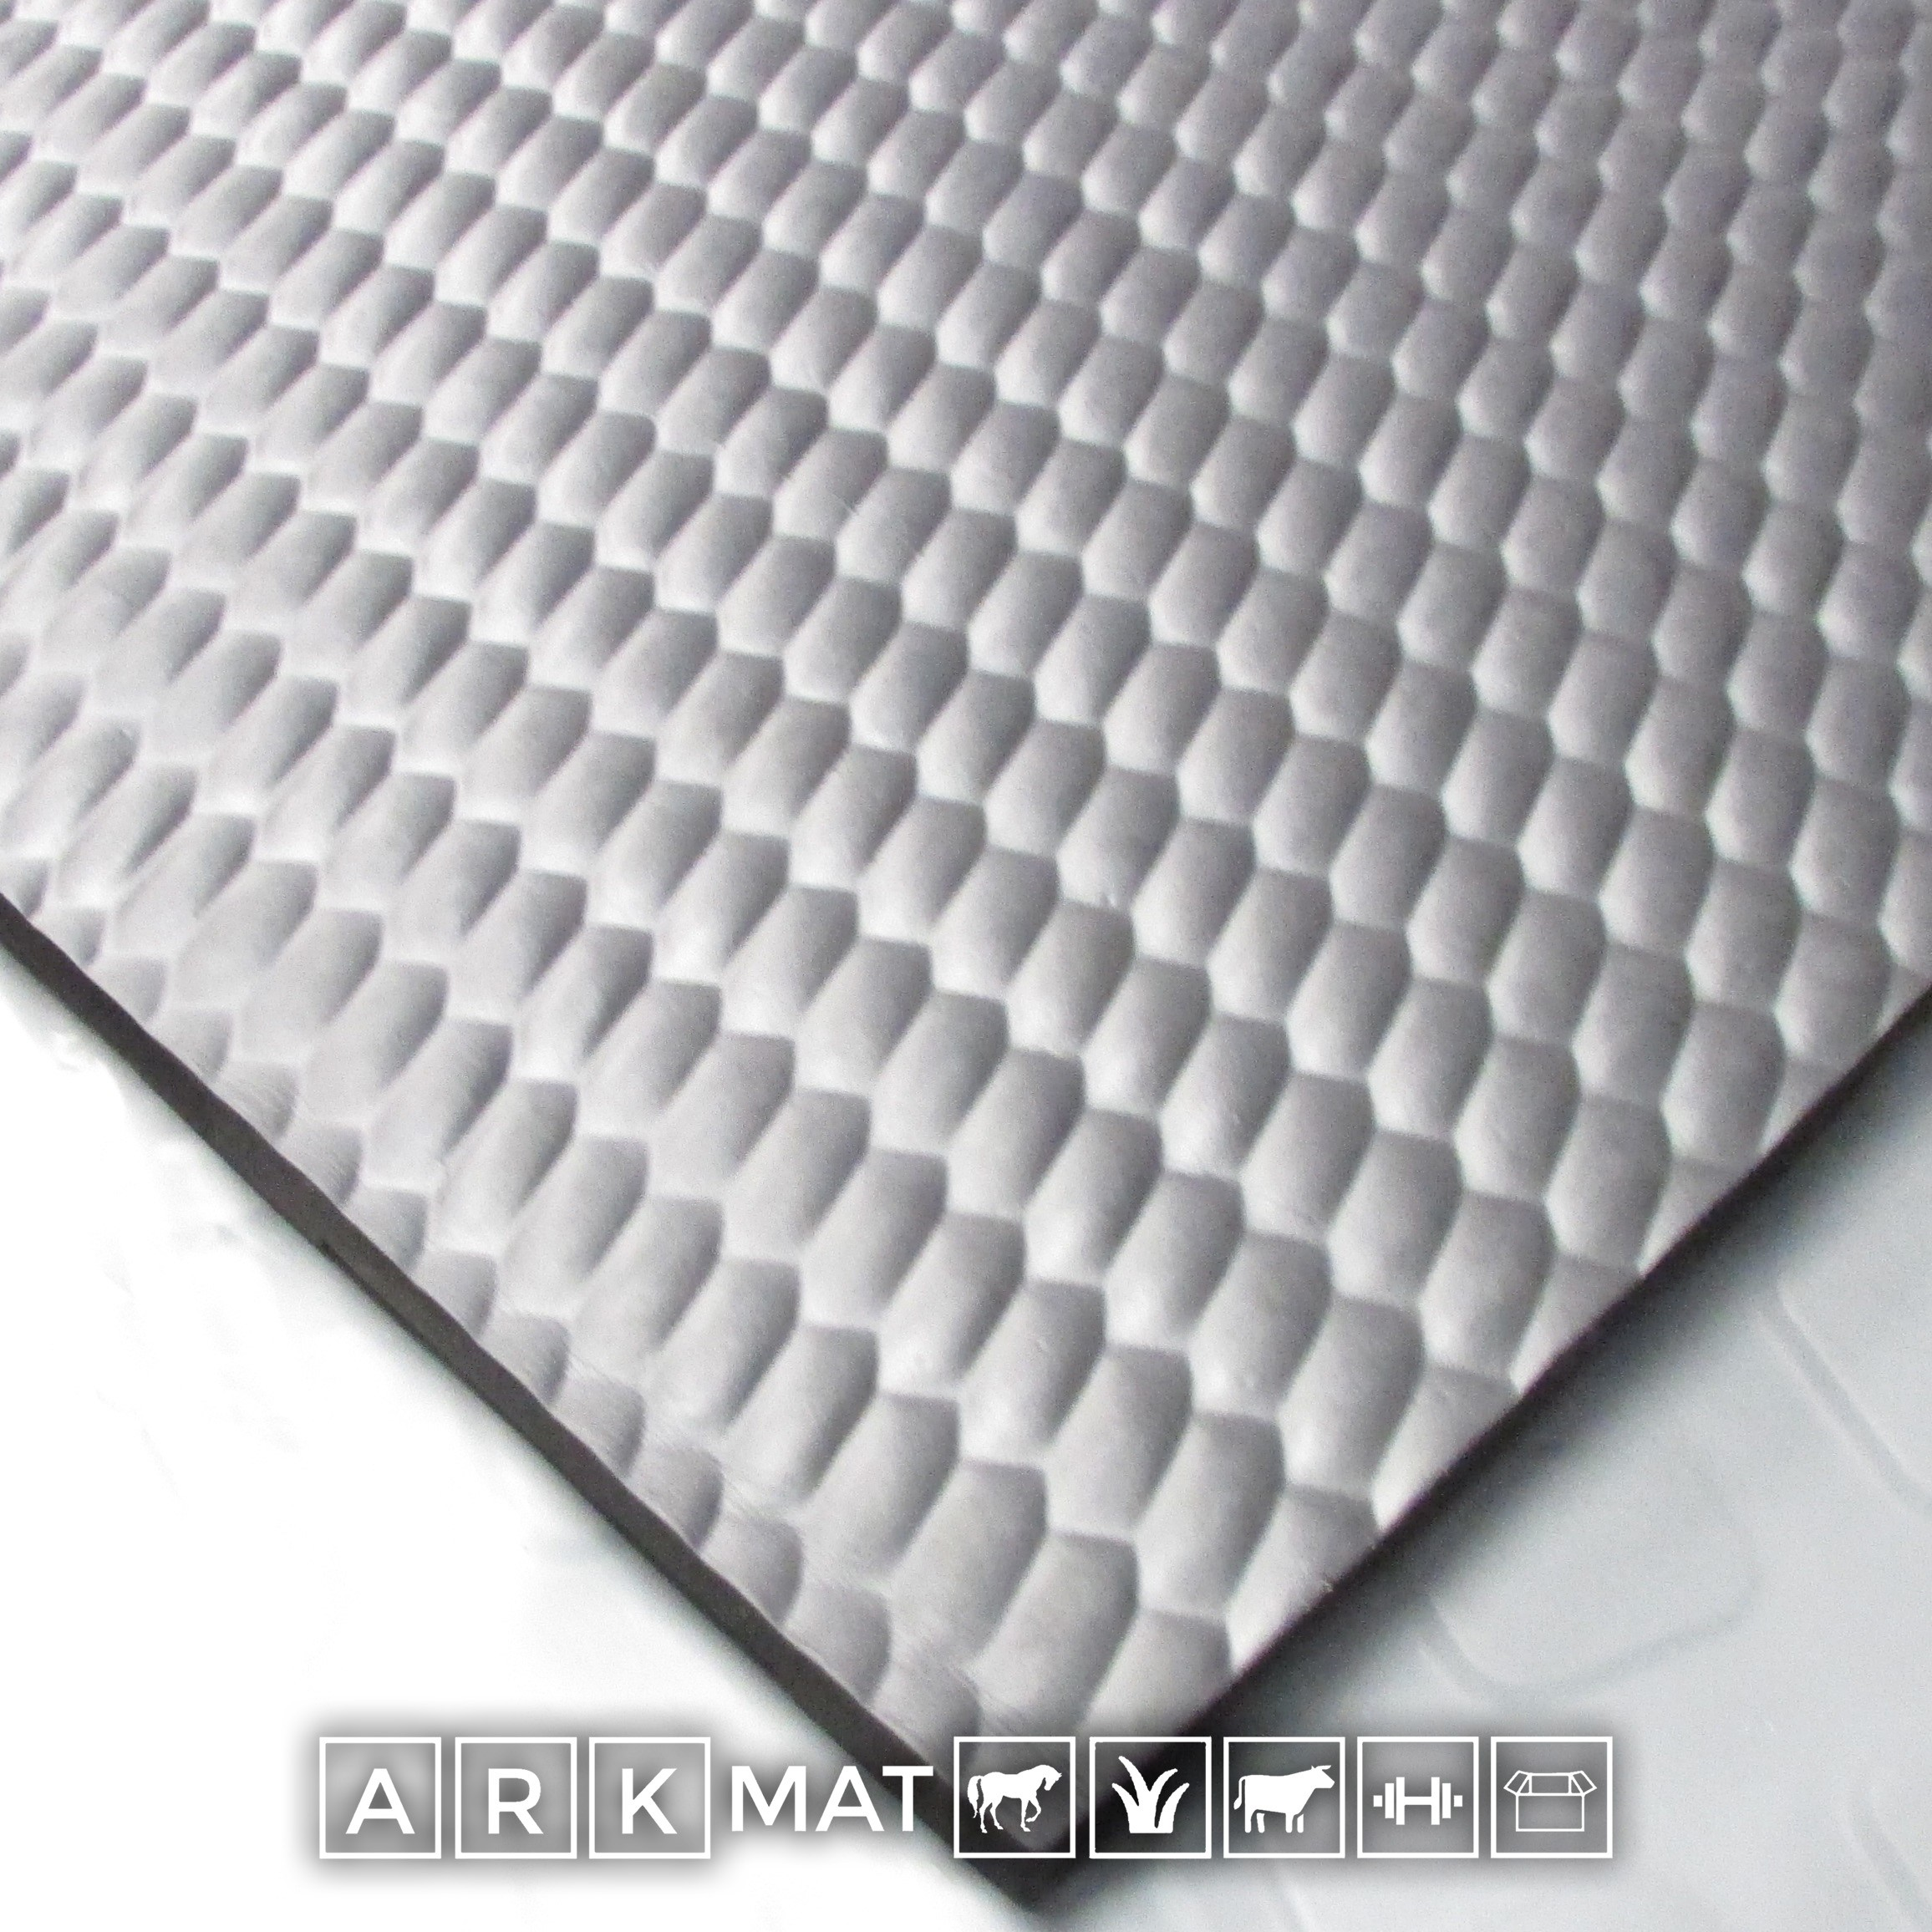 44mm EVA Stable Floor Mats